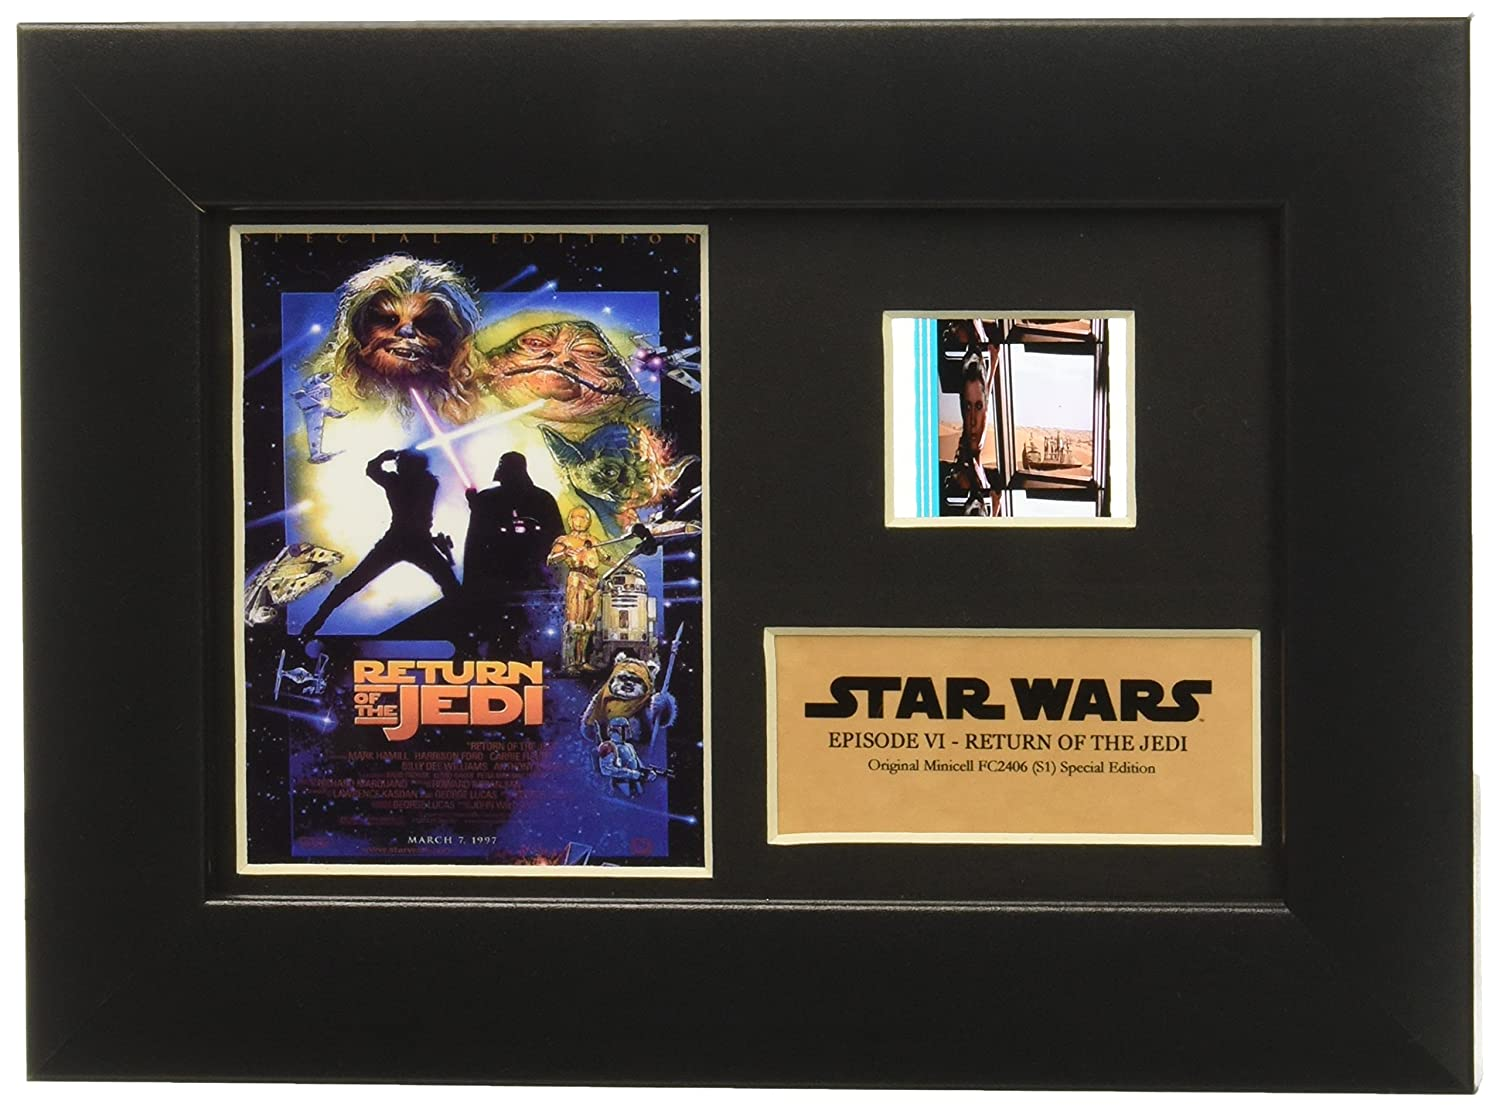 Star Wars Episode VI Return of the Jedi Authentic 35mm Film Cell Special Edition Display 7x5 Rye USFC2406